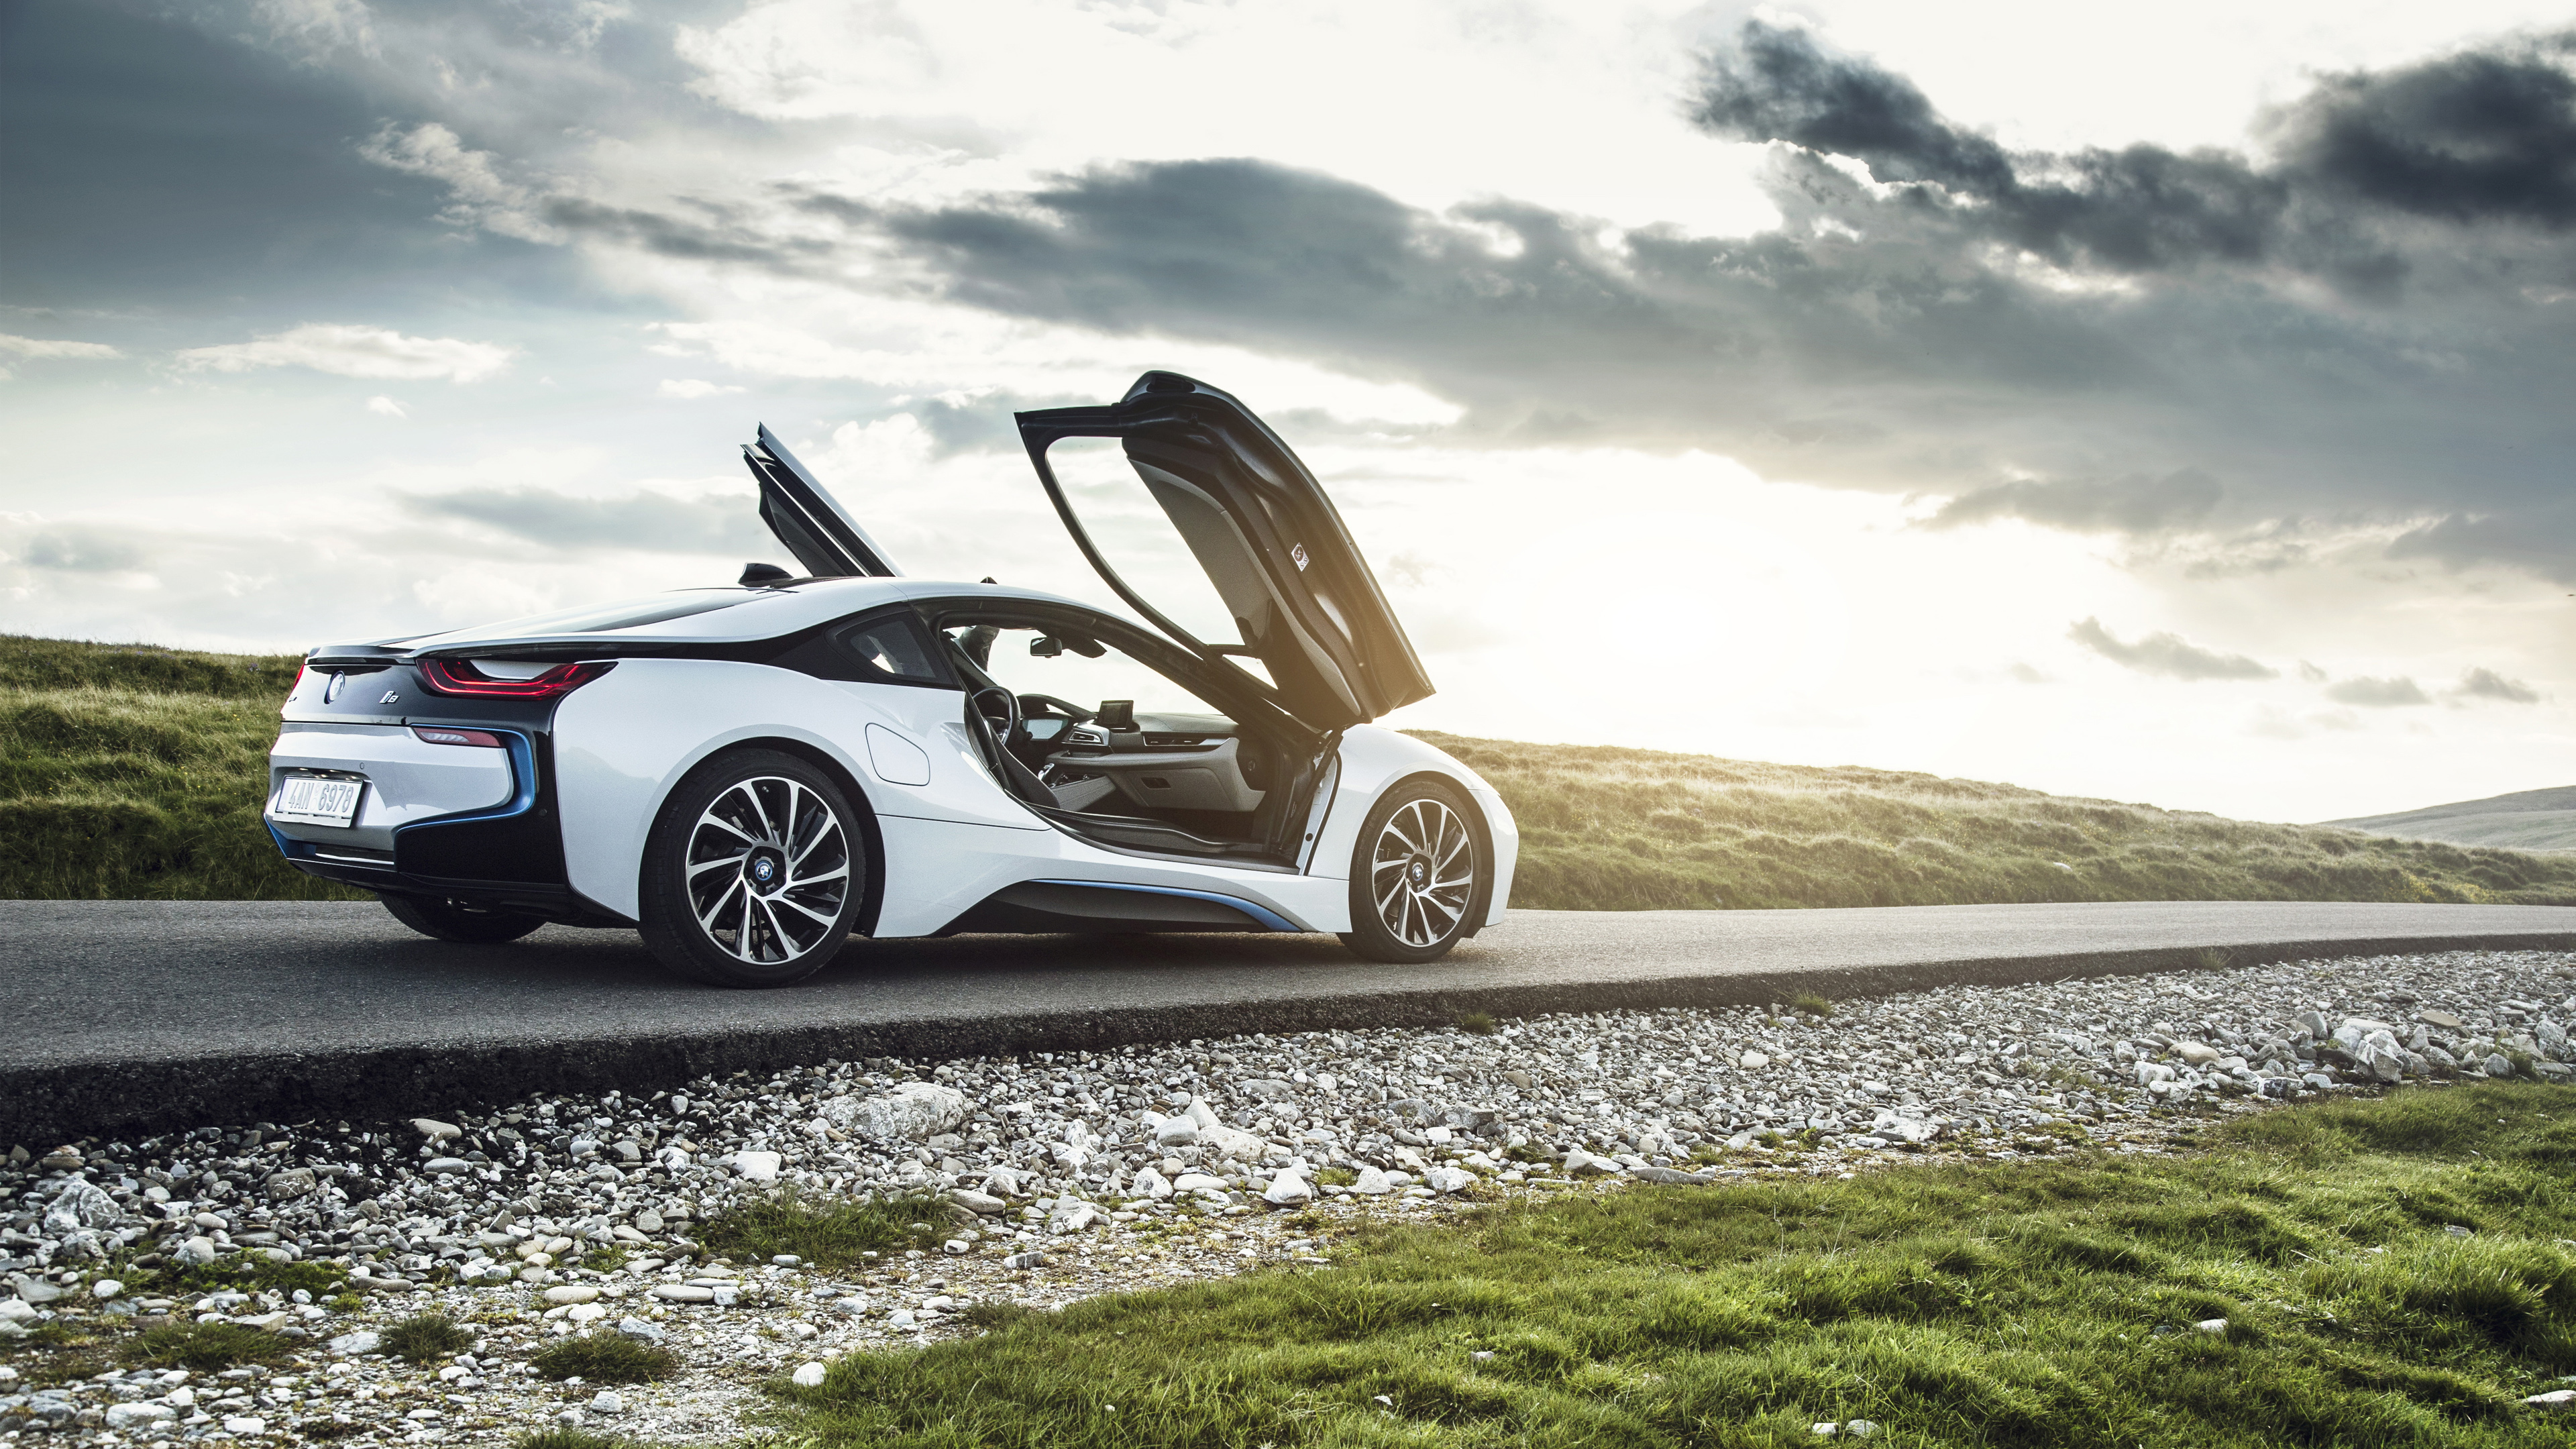 bmw i8 side view HD